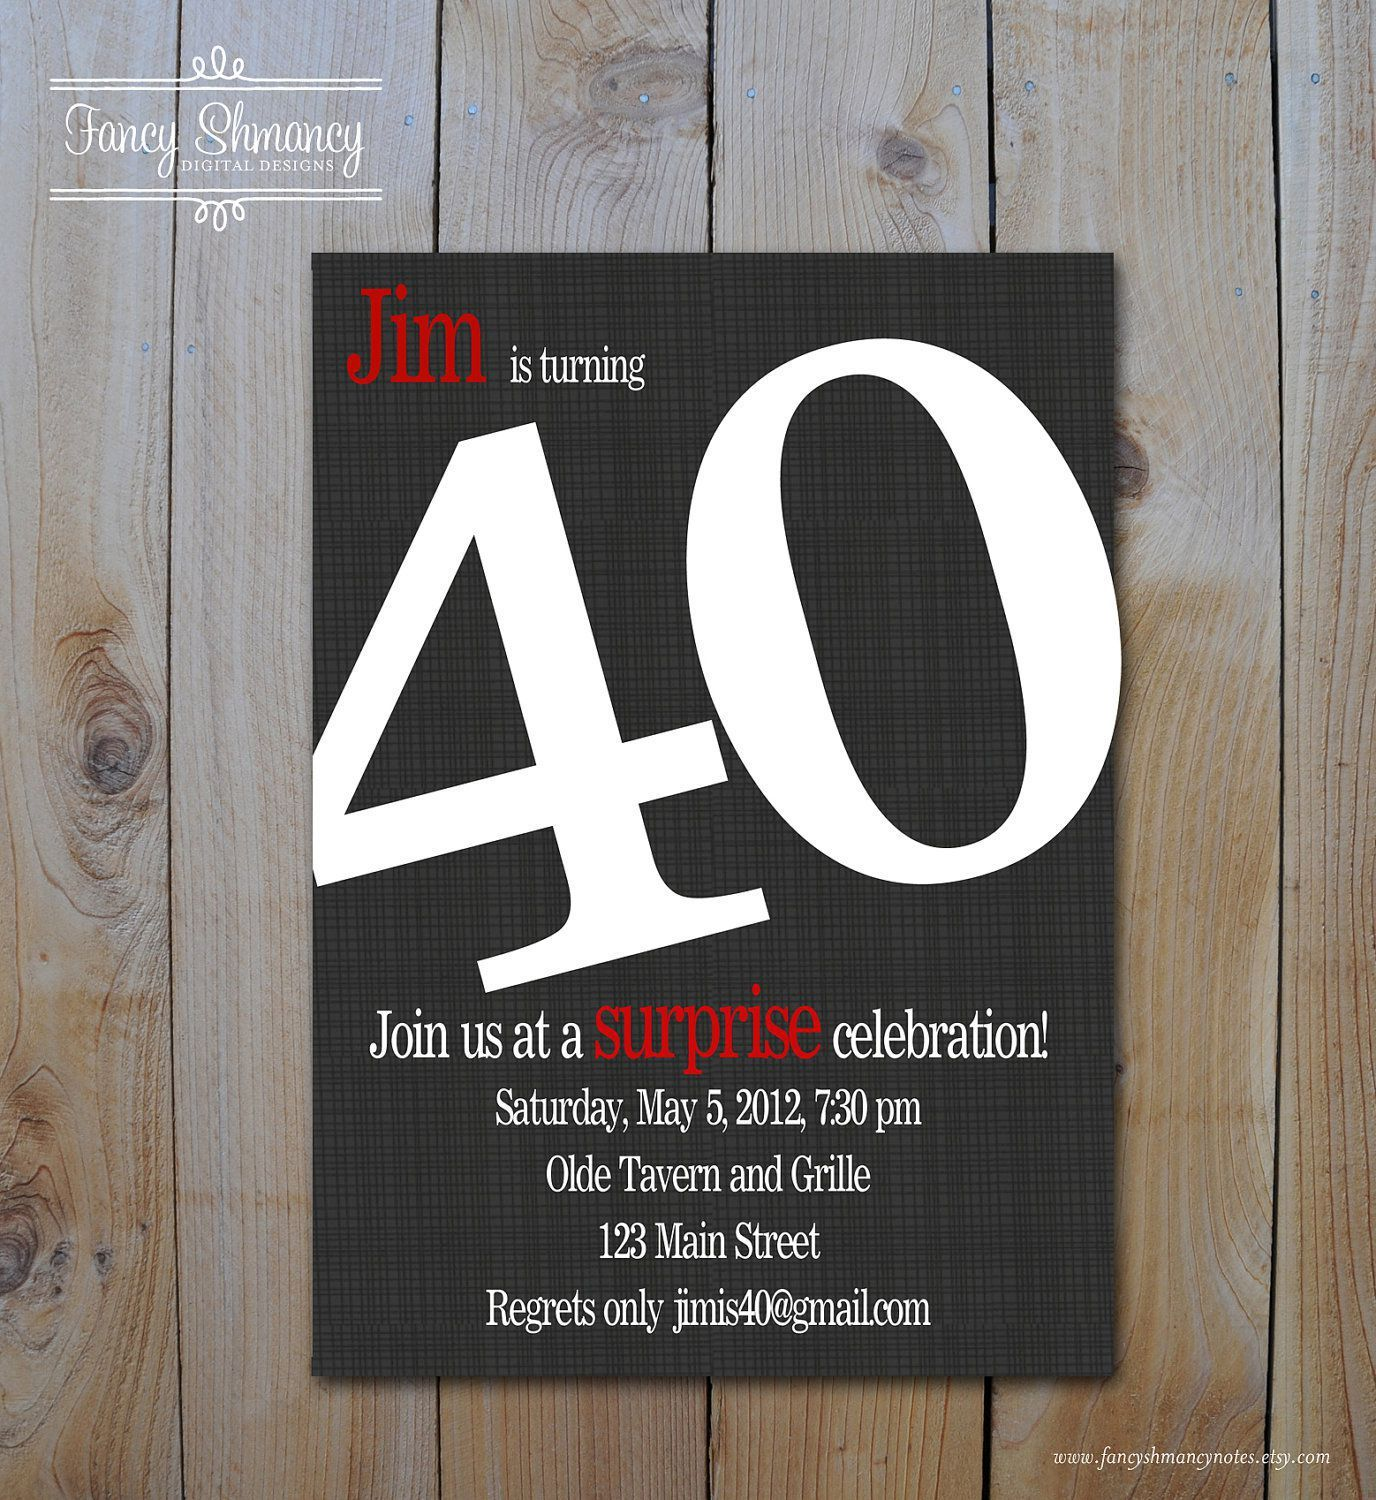 birthday invitation : 40th birthday invitations - Free Invitation ...